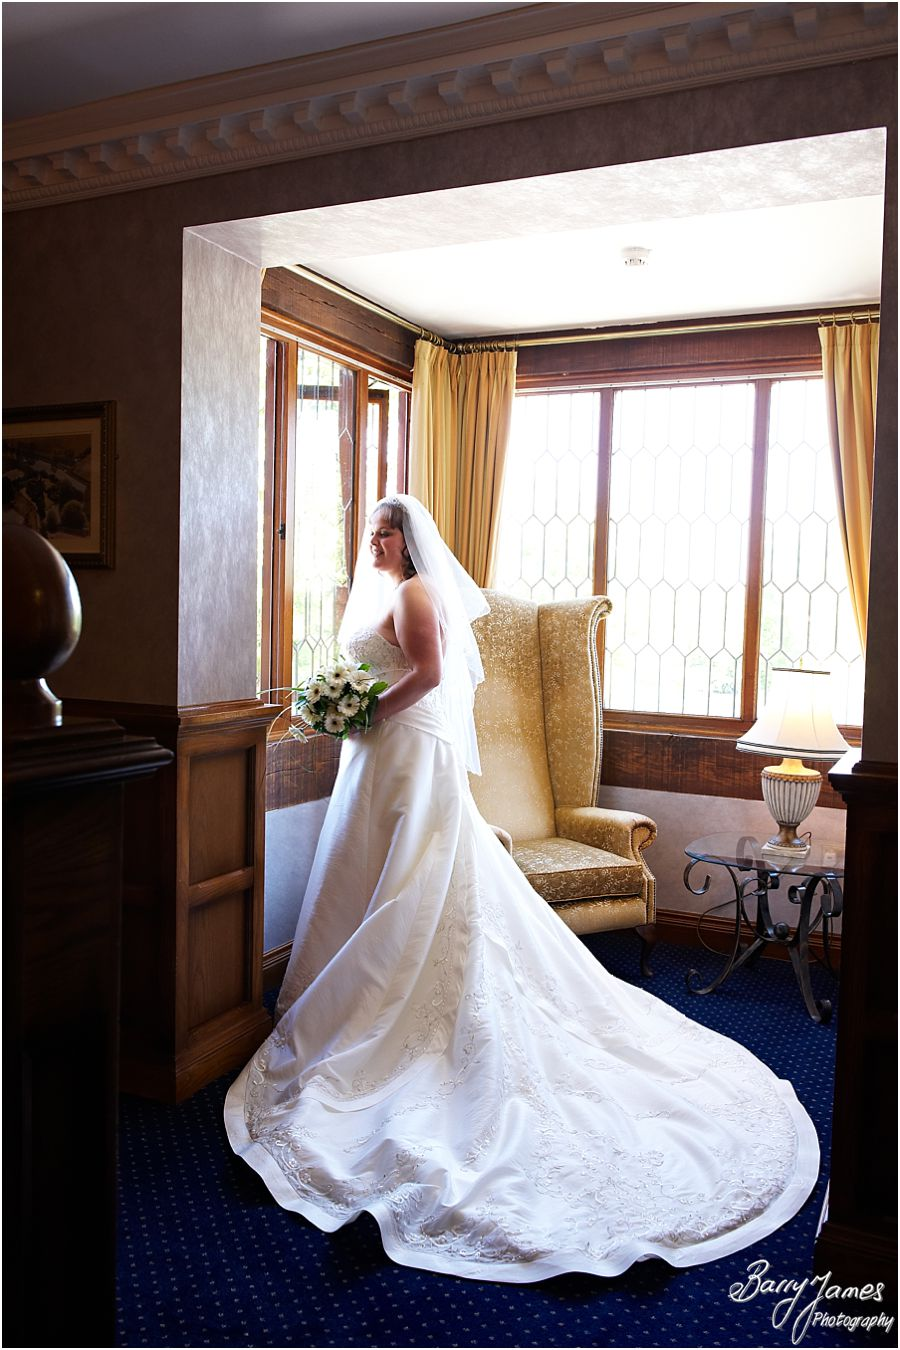 Creative and classical wedding photographer capturing weddings at The Moat House in Acton Trussell by Moat House Wedding Photographer Barry James